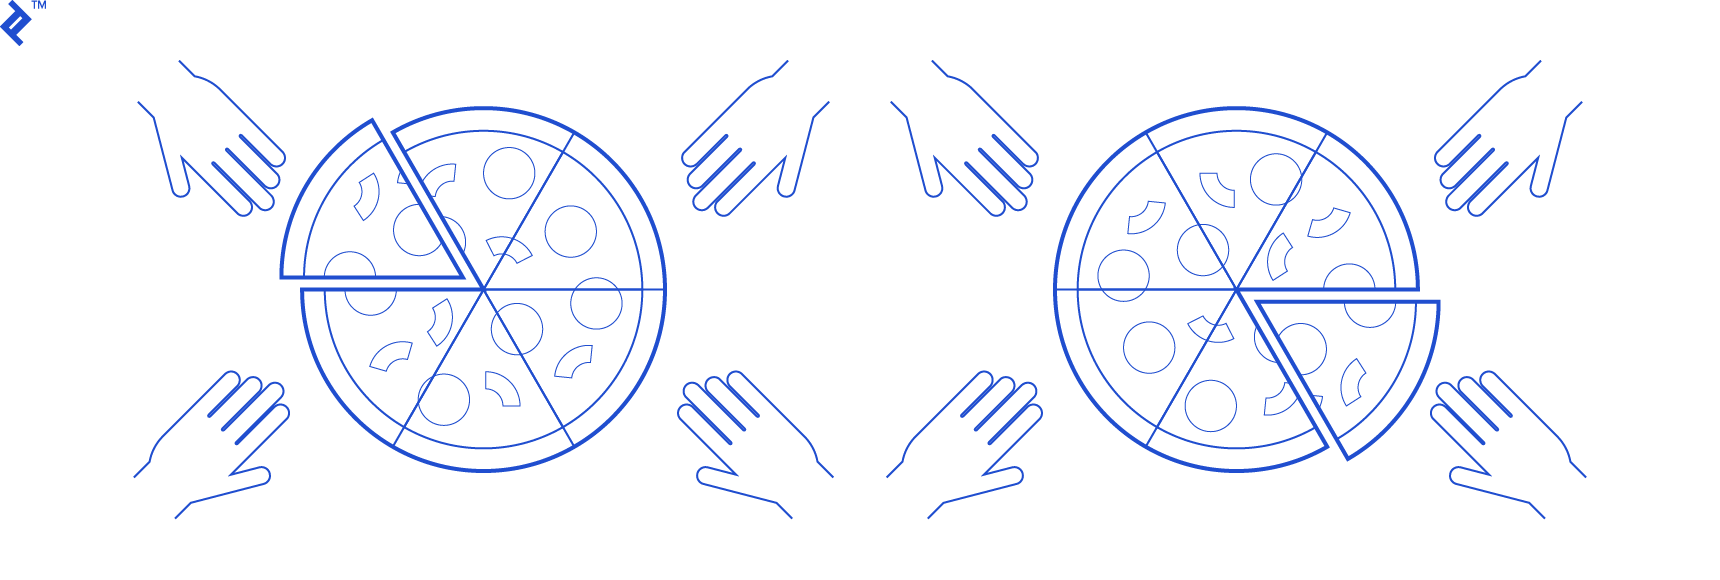 Two-pizza rule for scrum teams